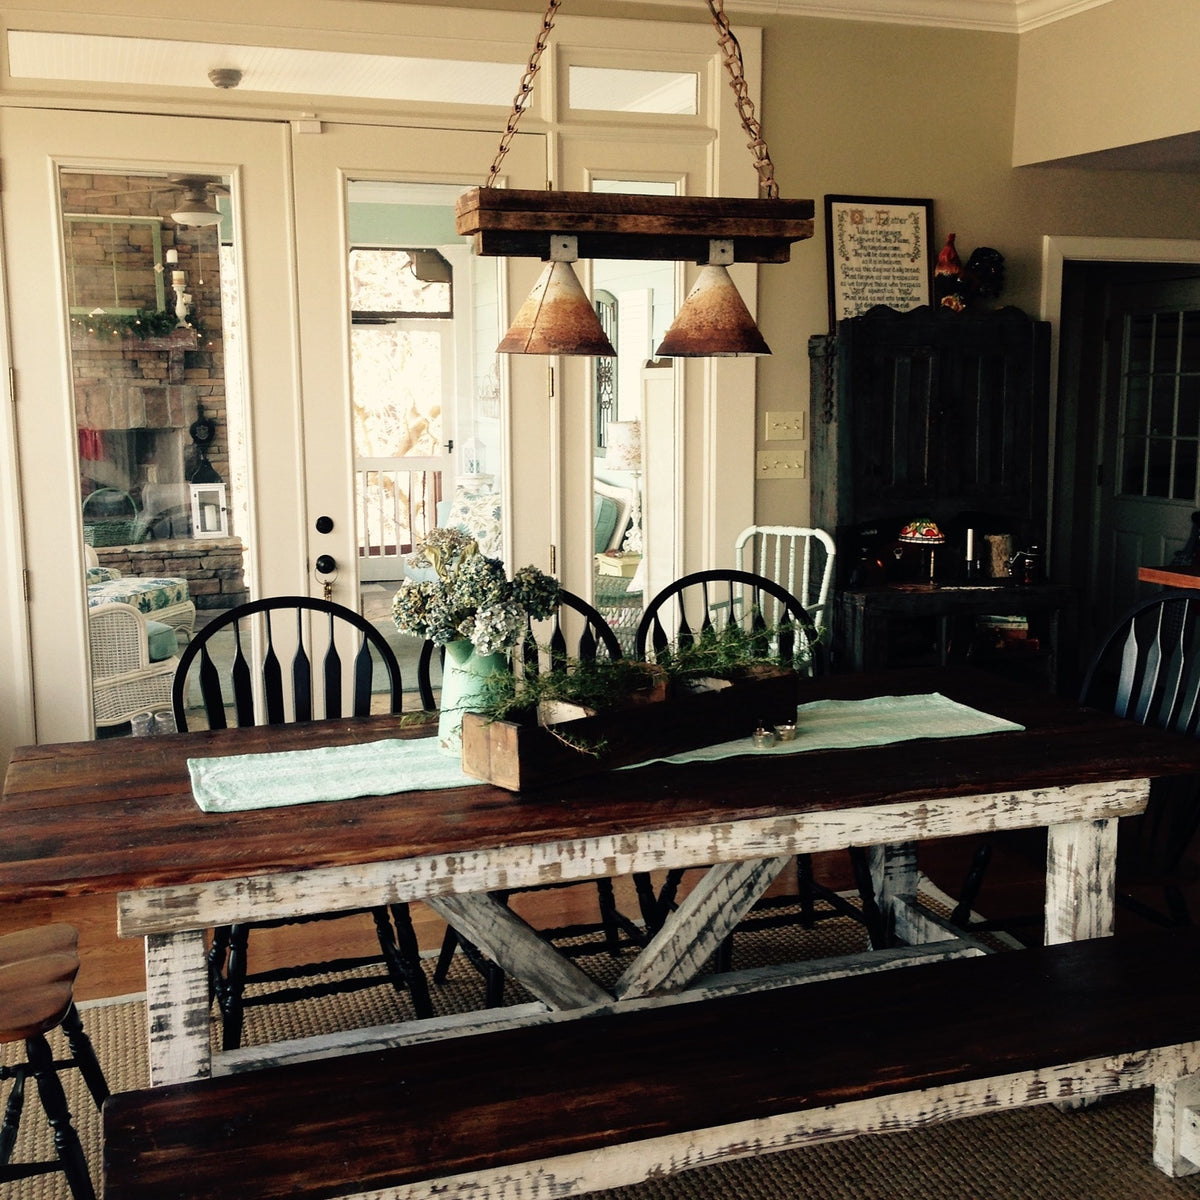 Authentic Reclaimed Wood Farm Tables